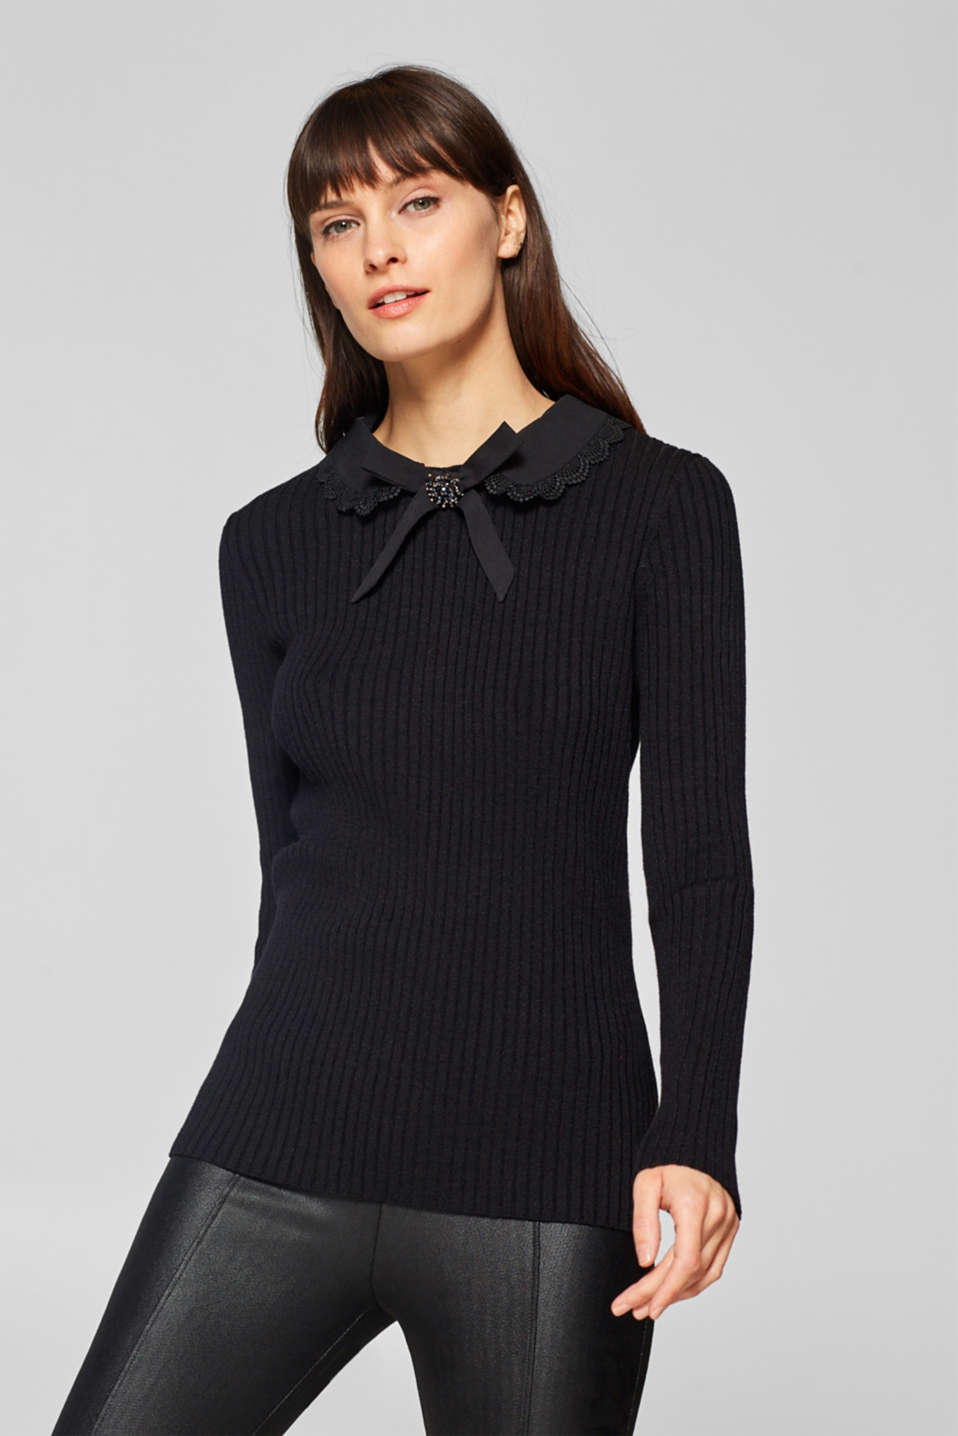 Esprit - Rib knit jumper with an embellished collar